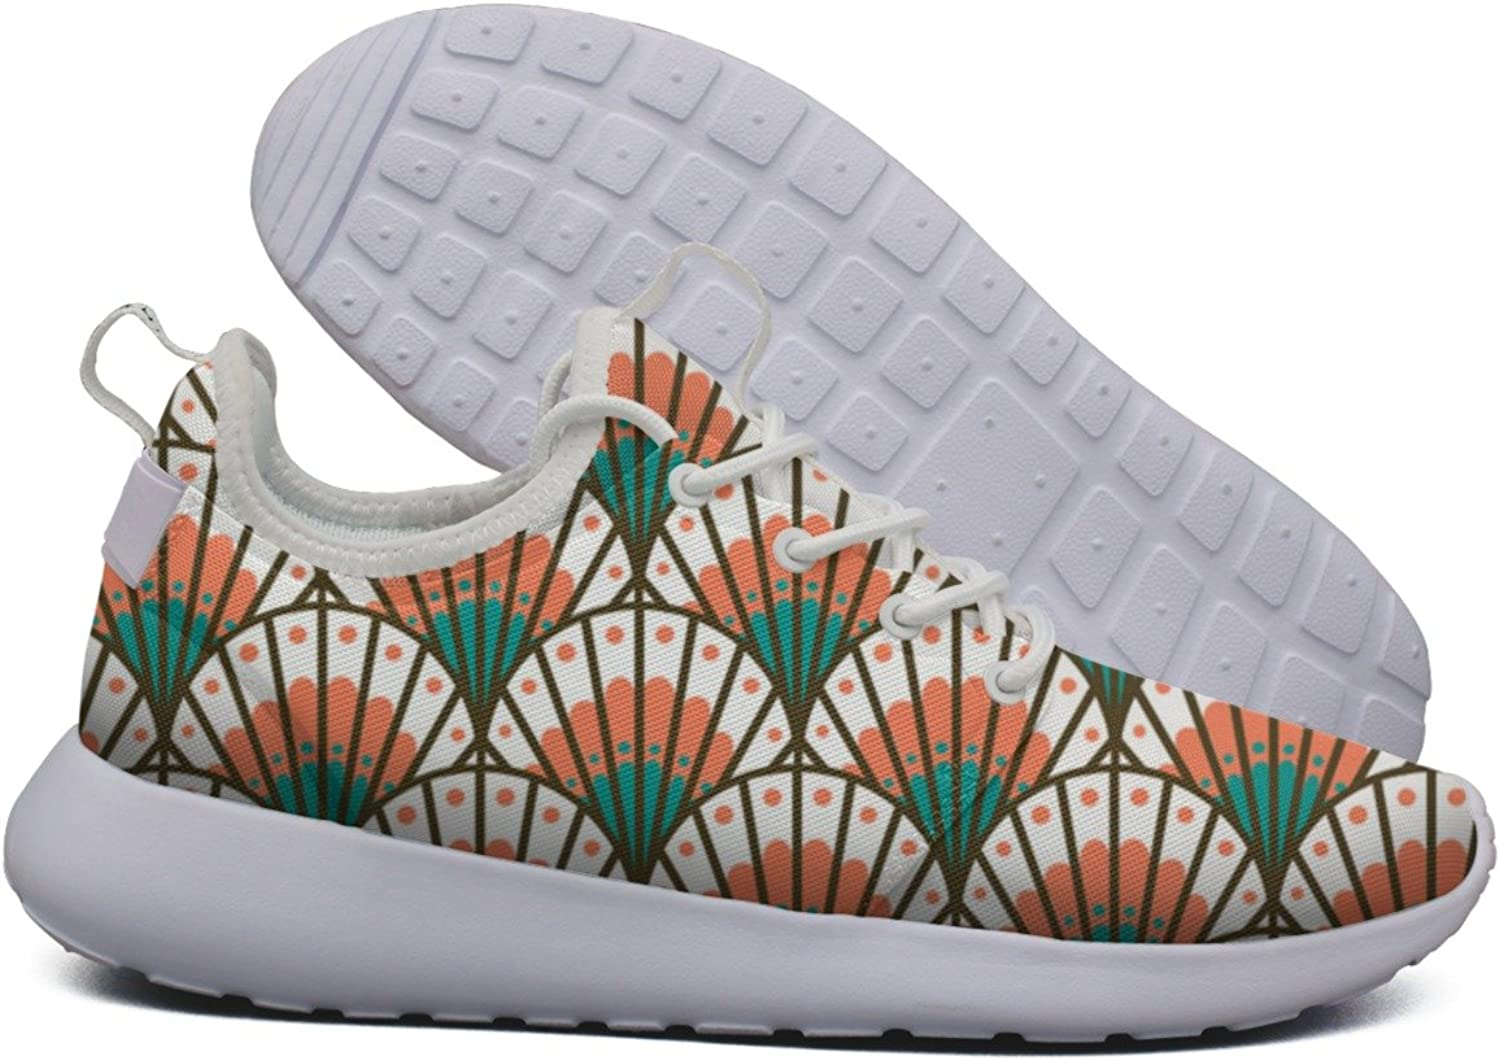 Coral Scallop Shell Beach Pattern Women's Lightweight Mesh Running Sneakers Exclusive Sports shoes